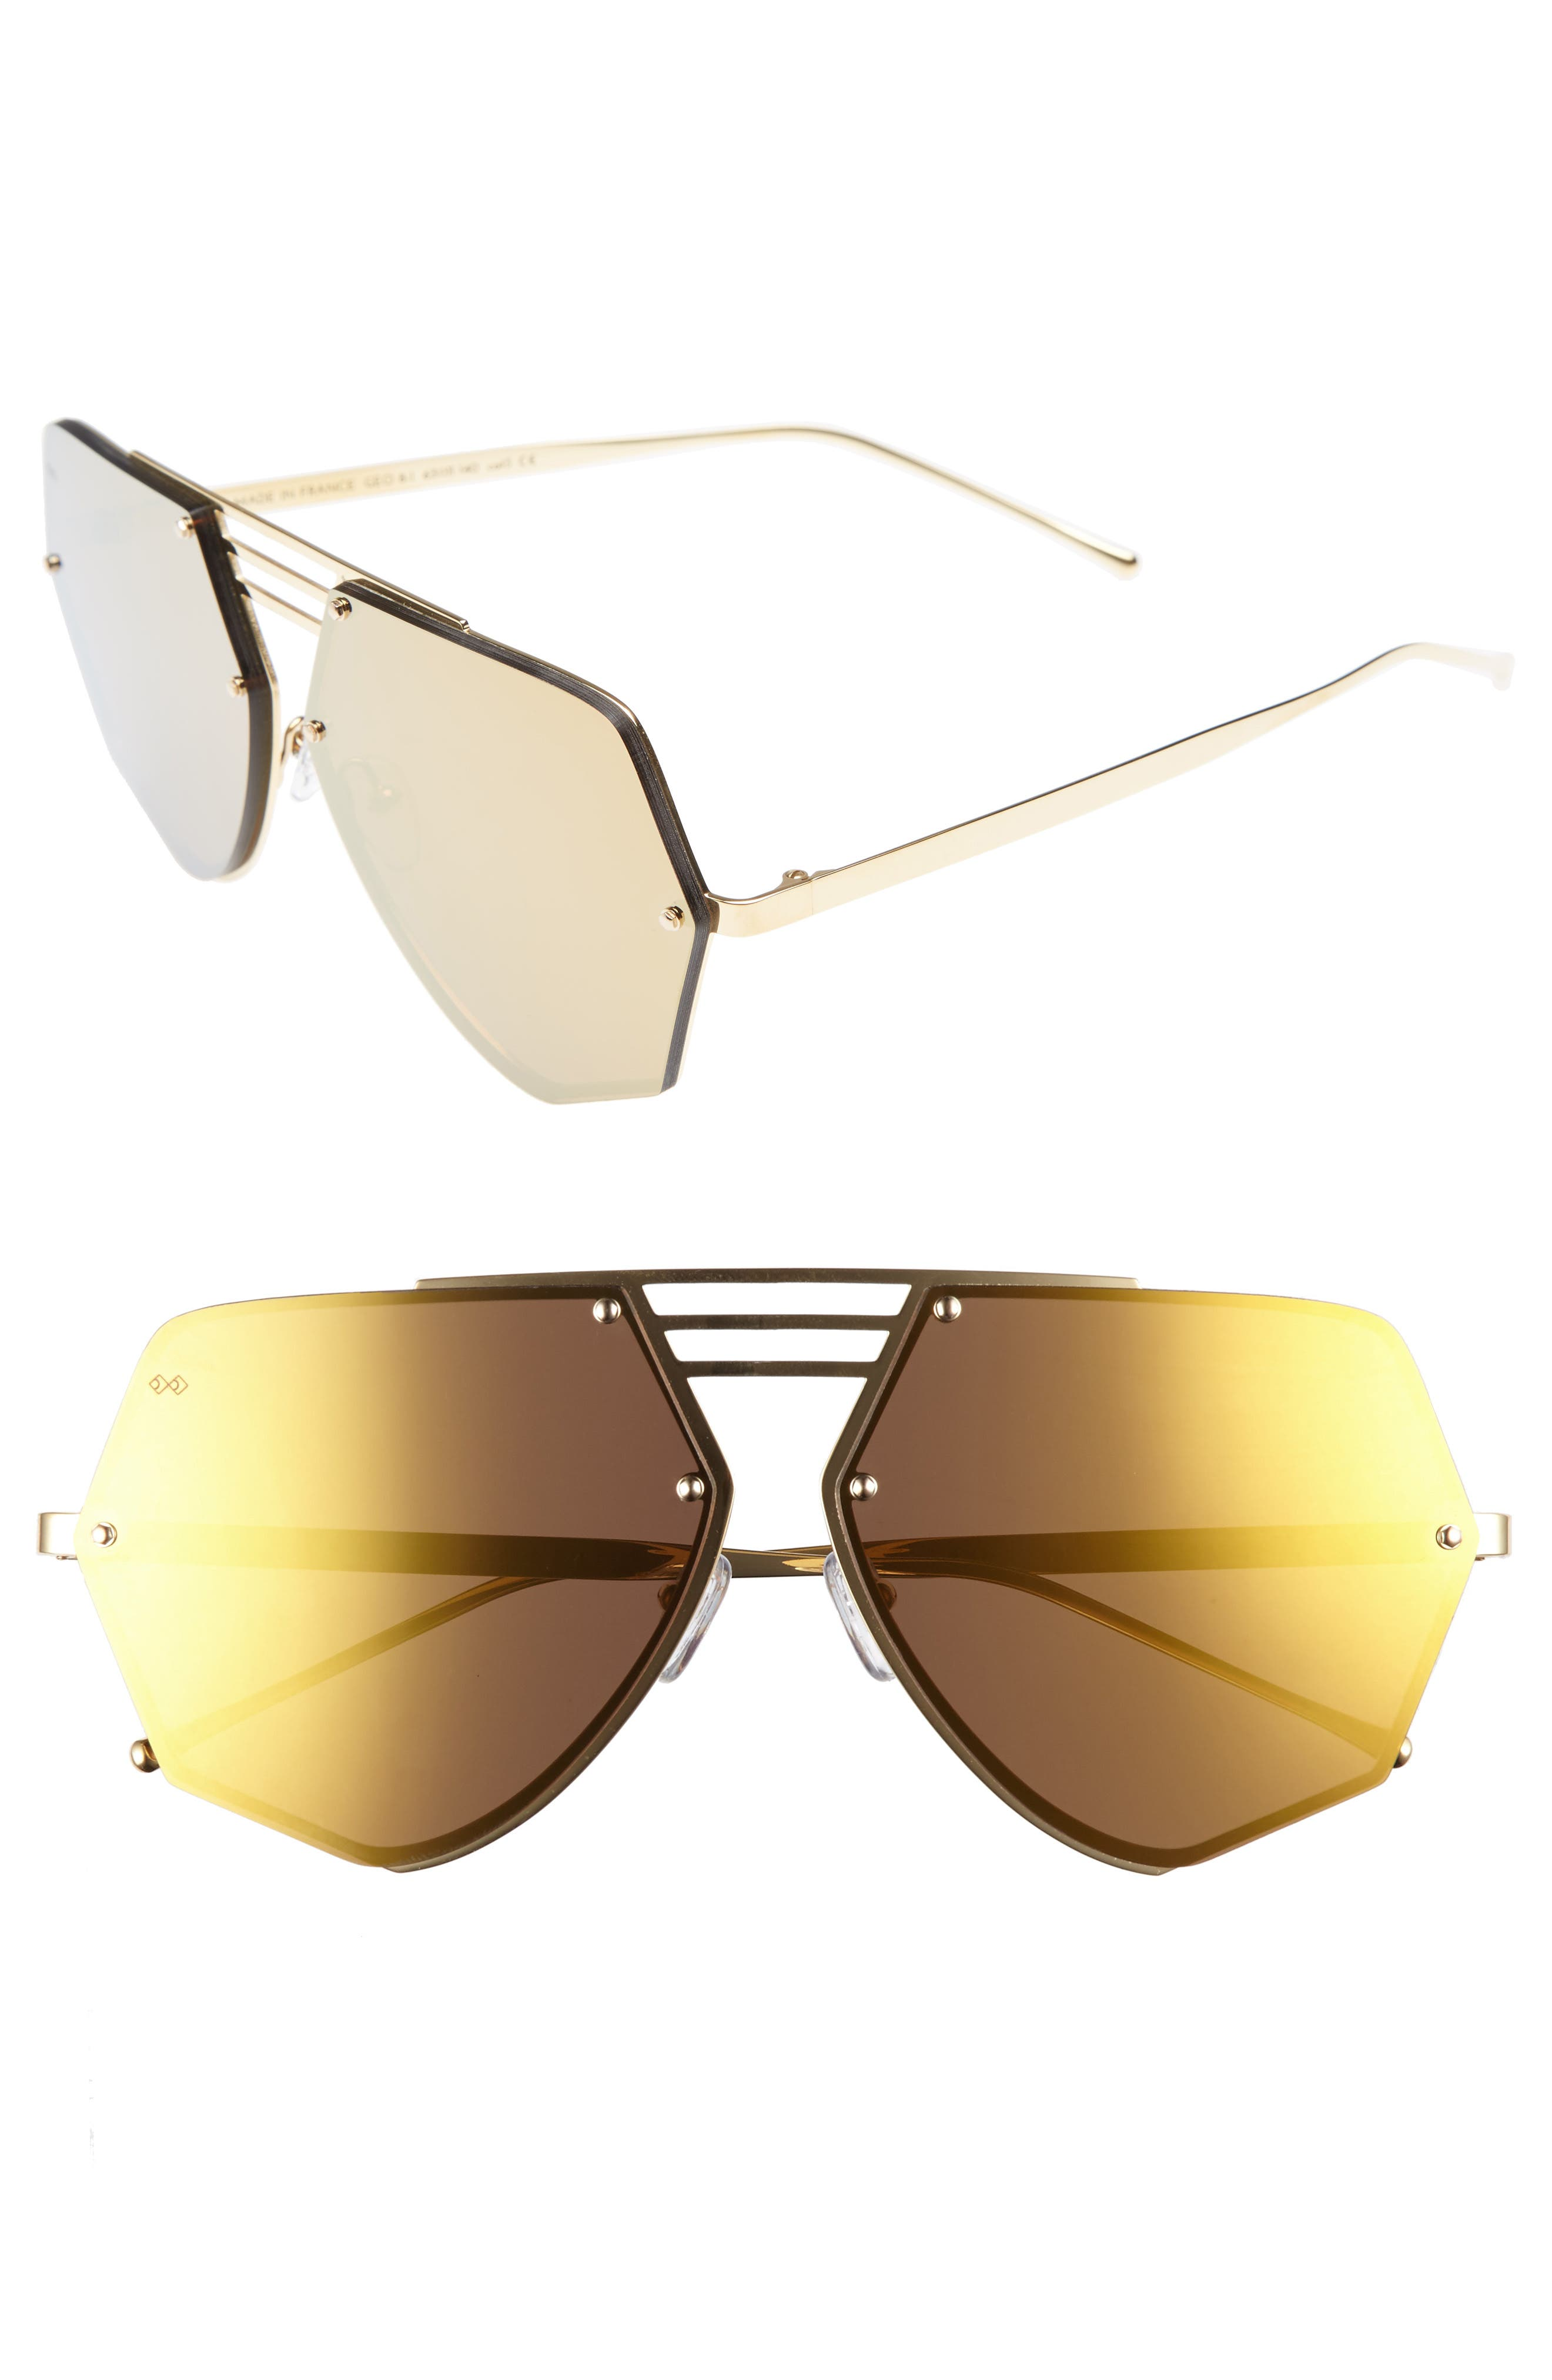 Geo 8 63mm Mirrored Sunglasses,                             Main thumbnail 1, color,                             GOLD/ GOLD MIRROR